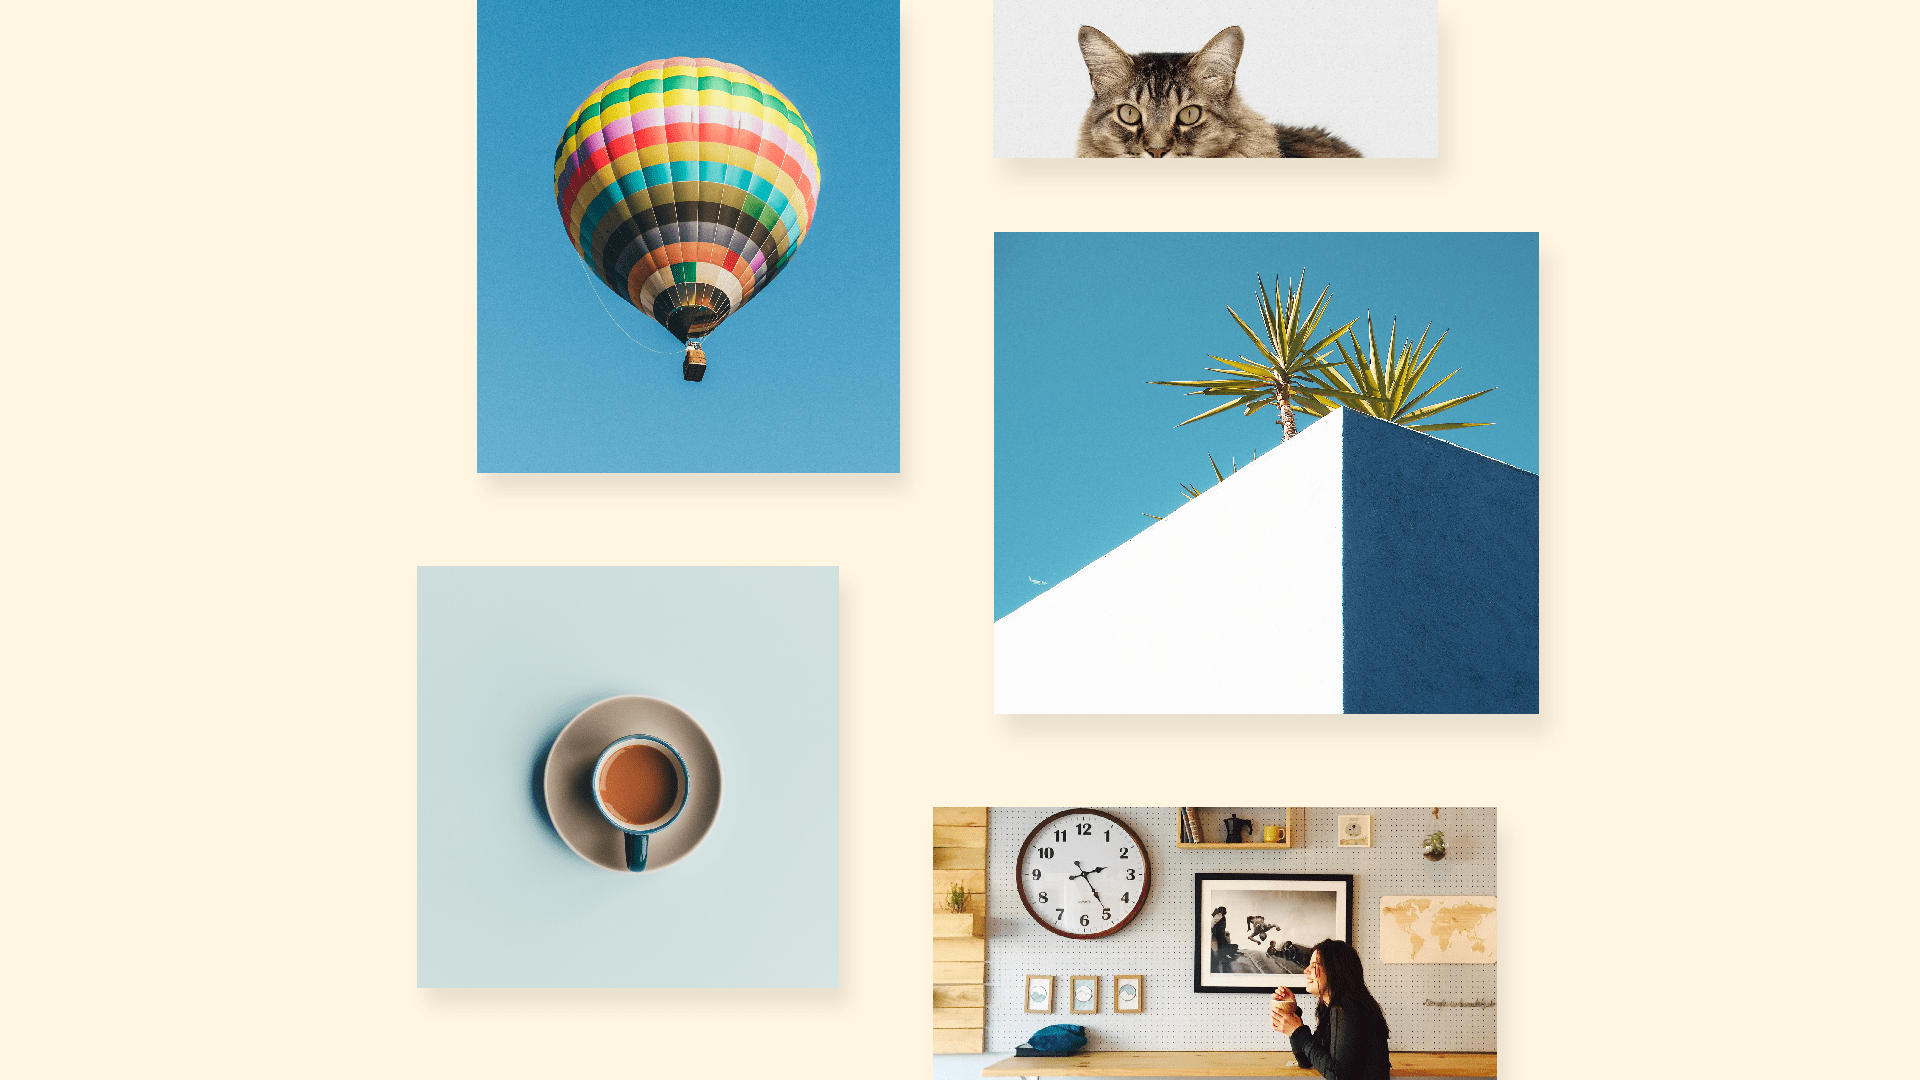 How-to-find-free-images-in-Canva